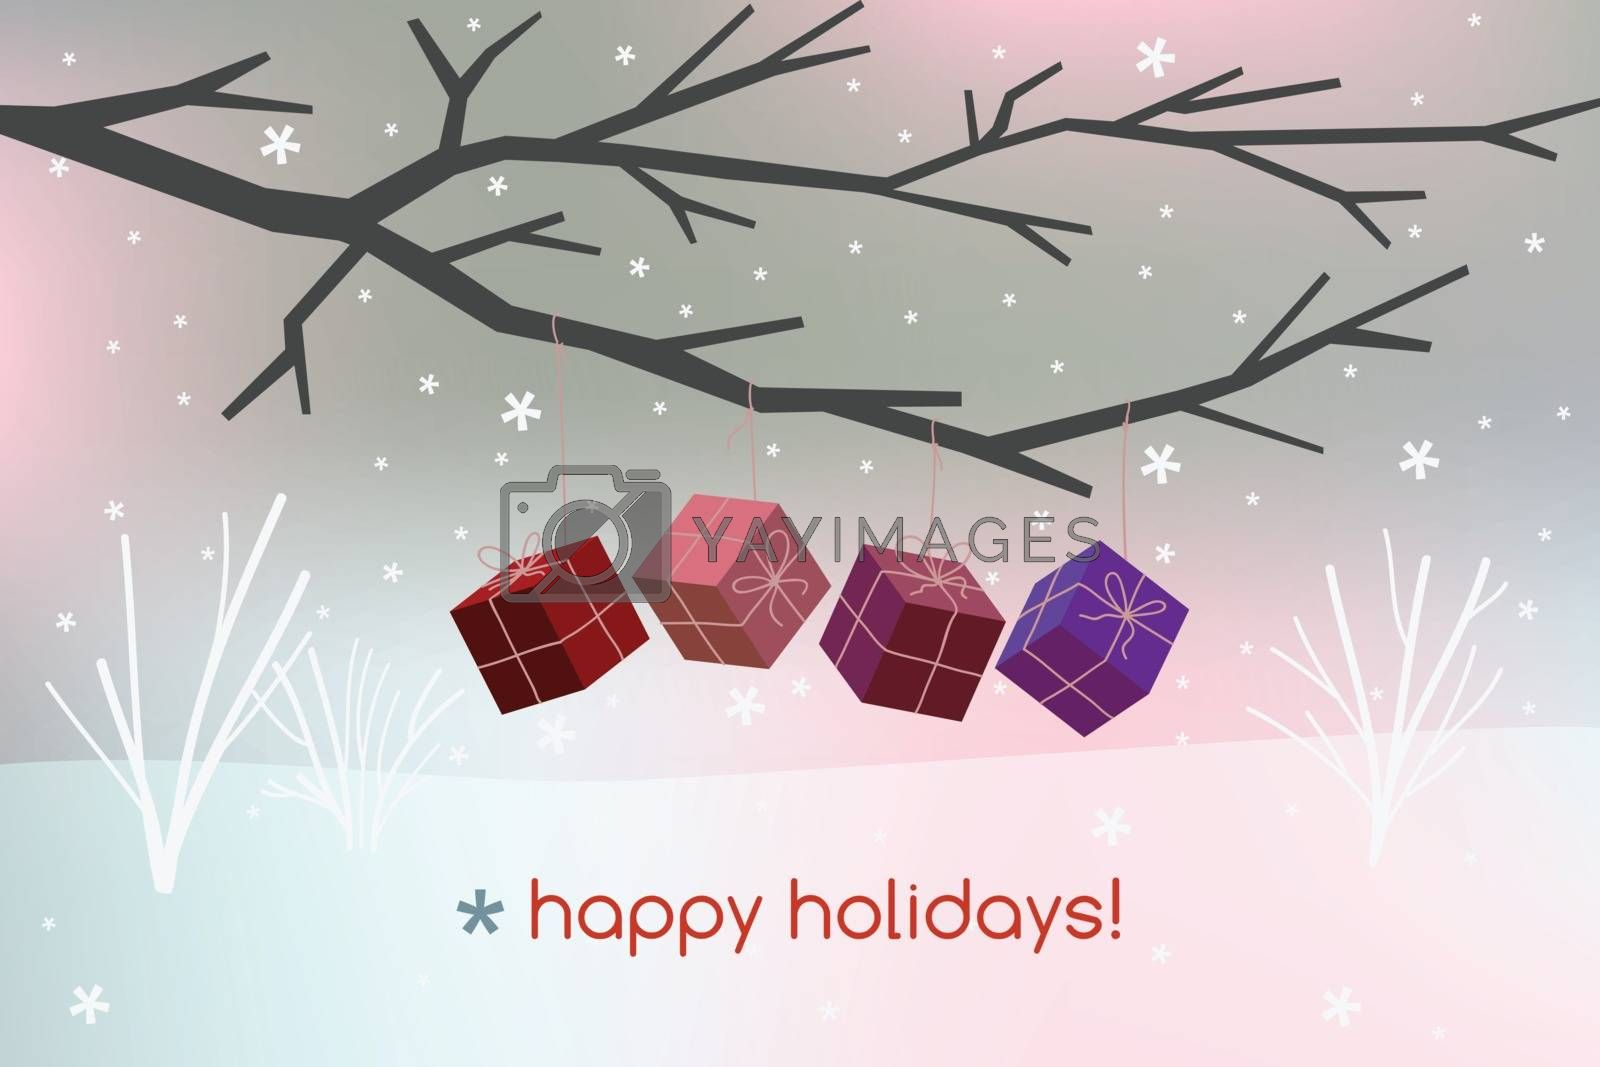 Christmas holiday card, winter season background, with snowflakes.